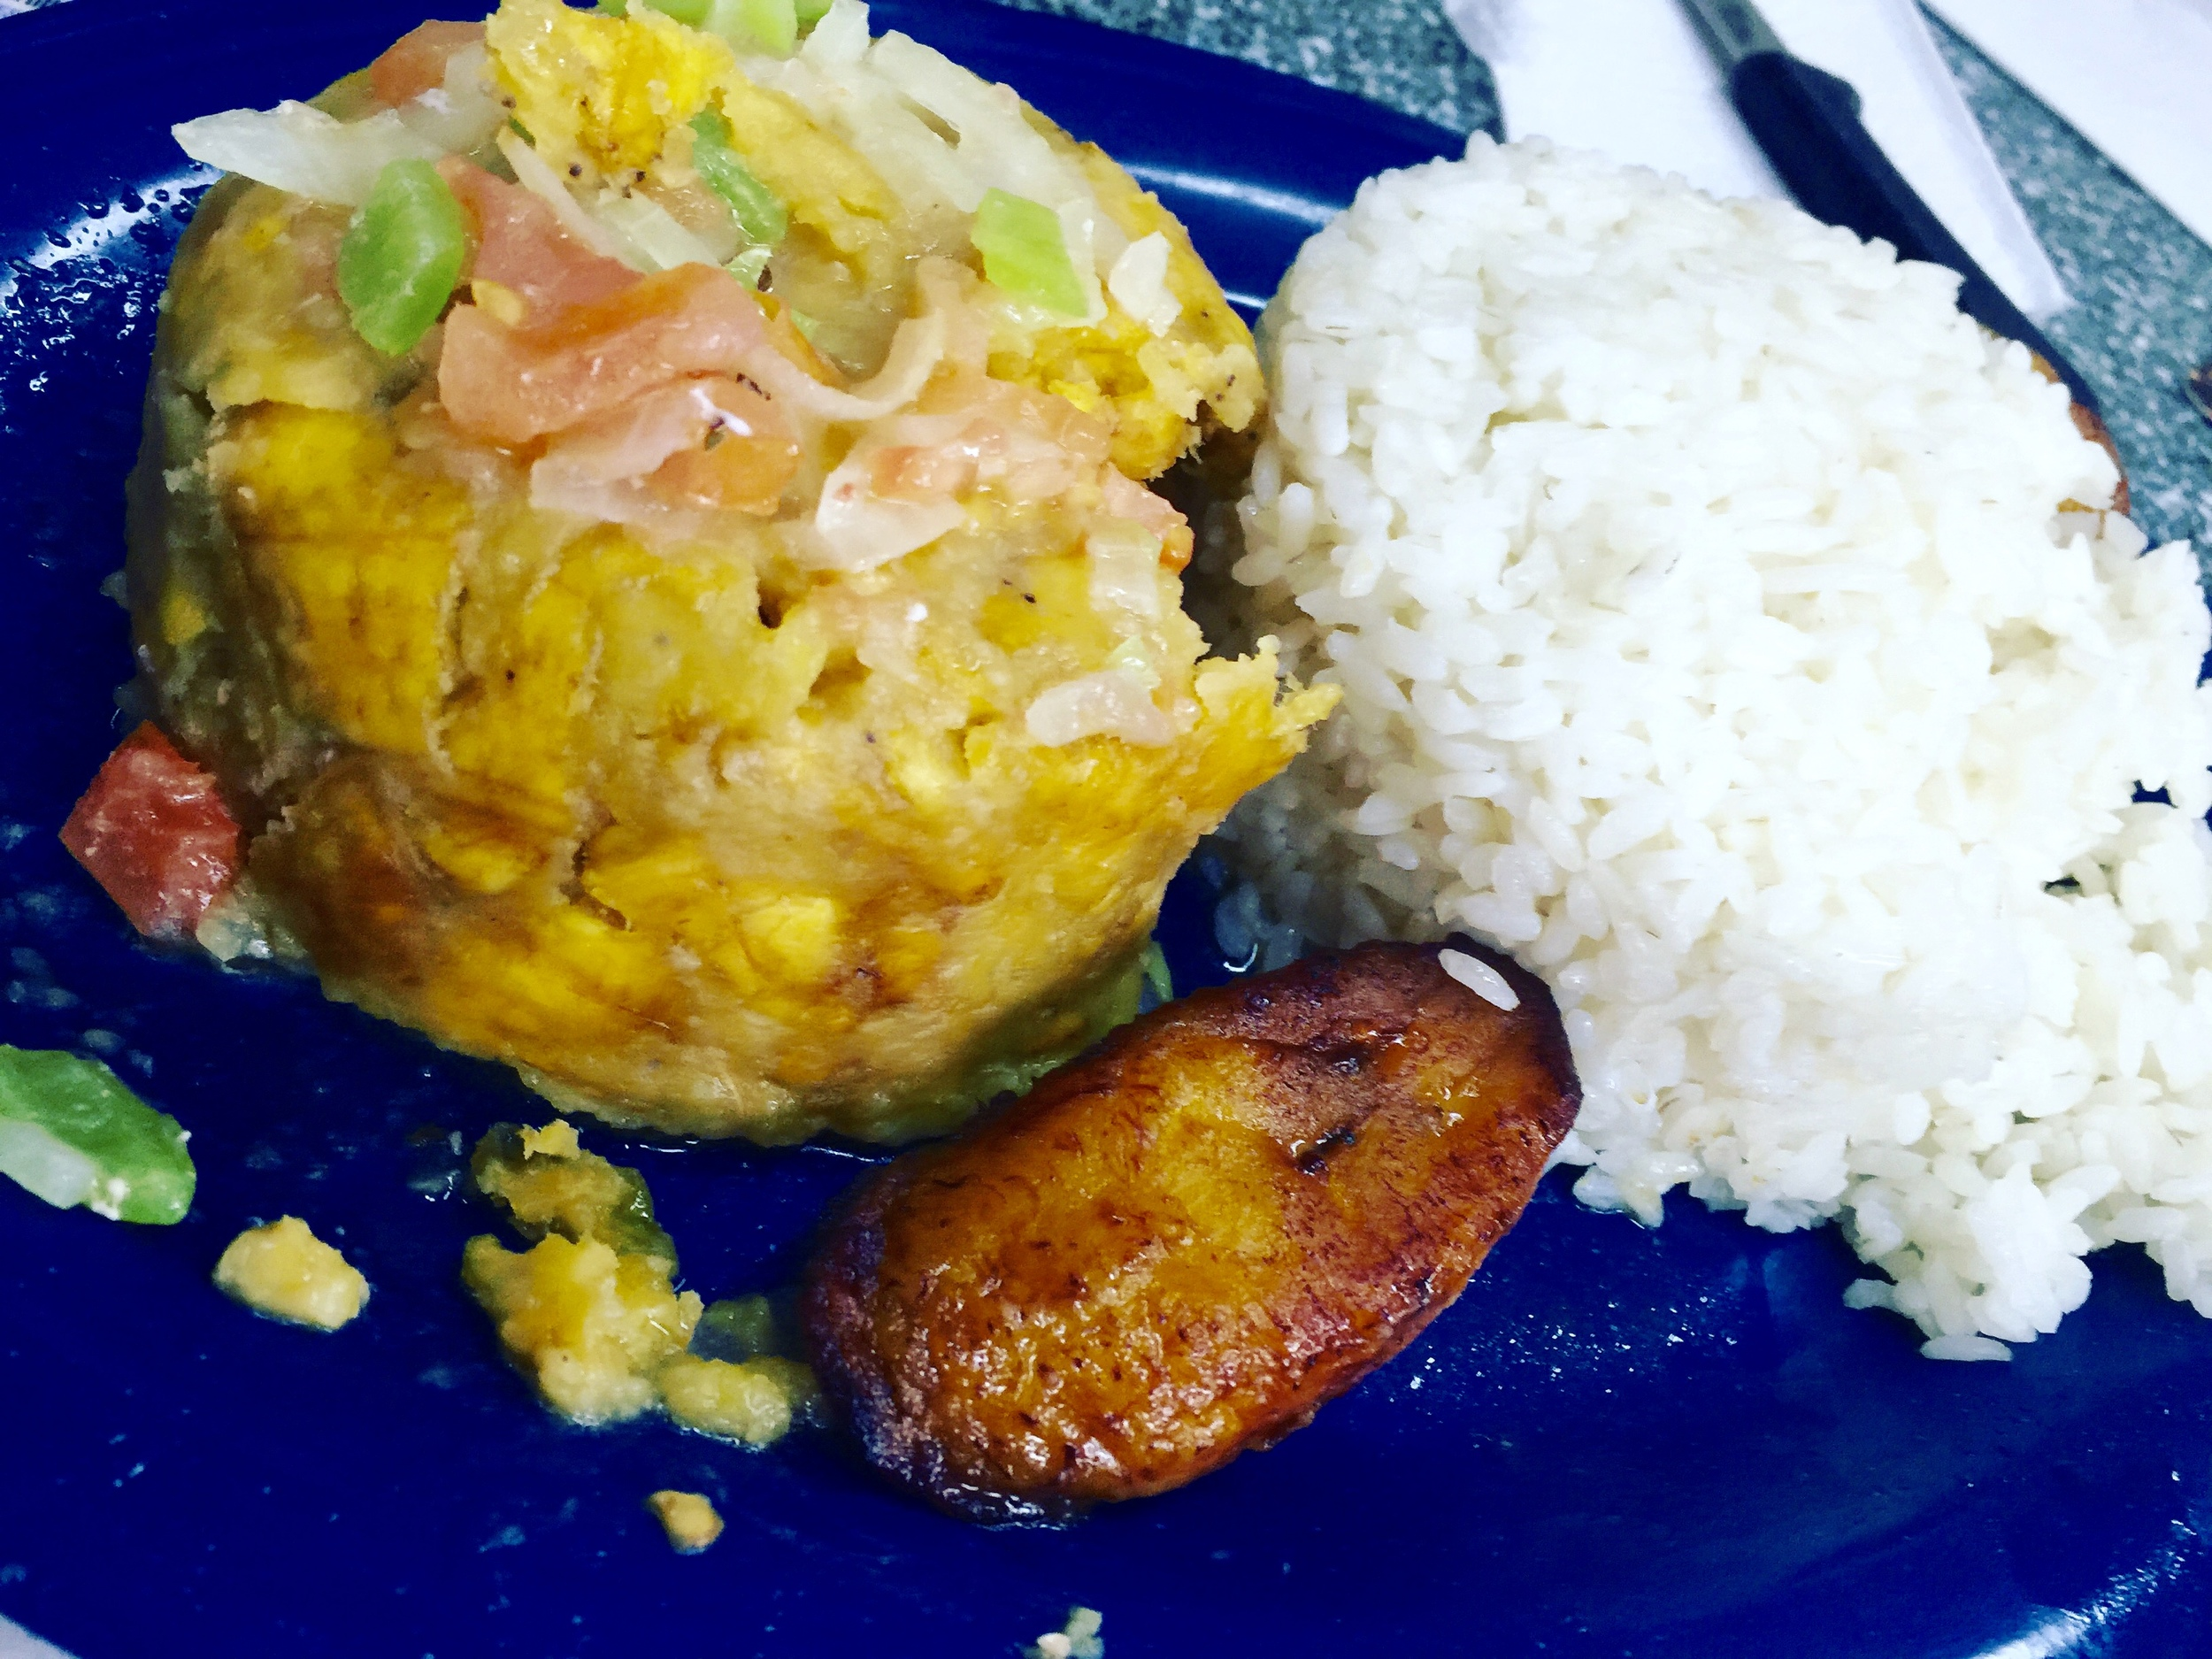 mofongo, rice and a side of plantains